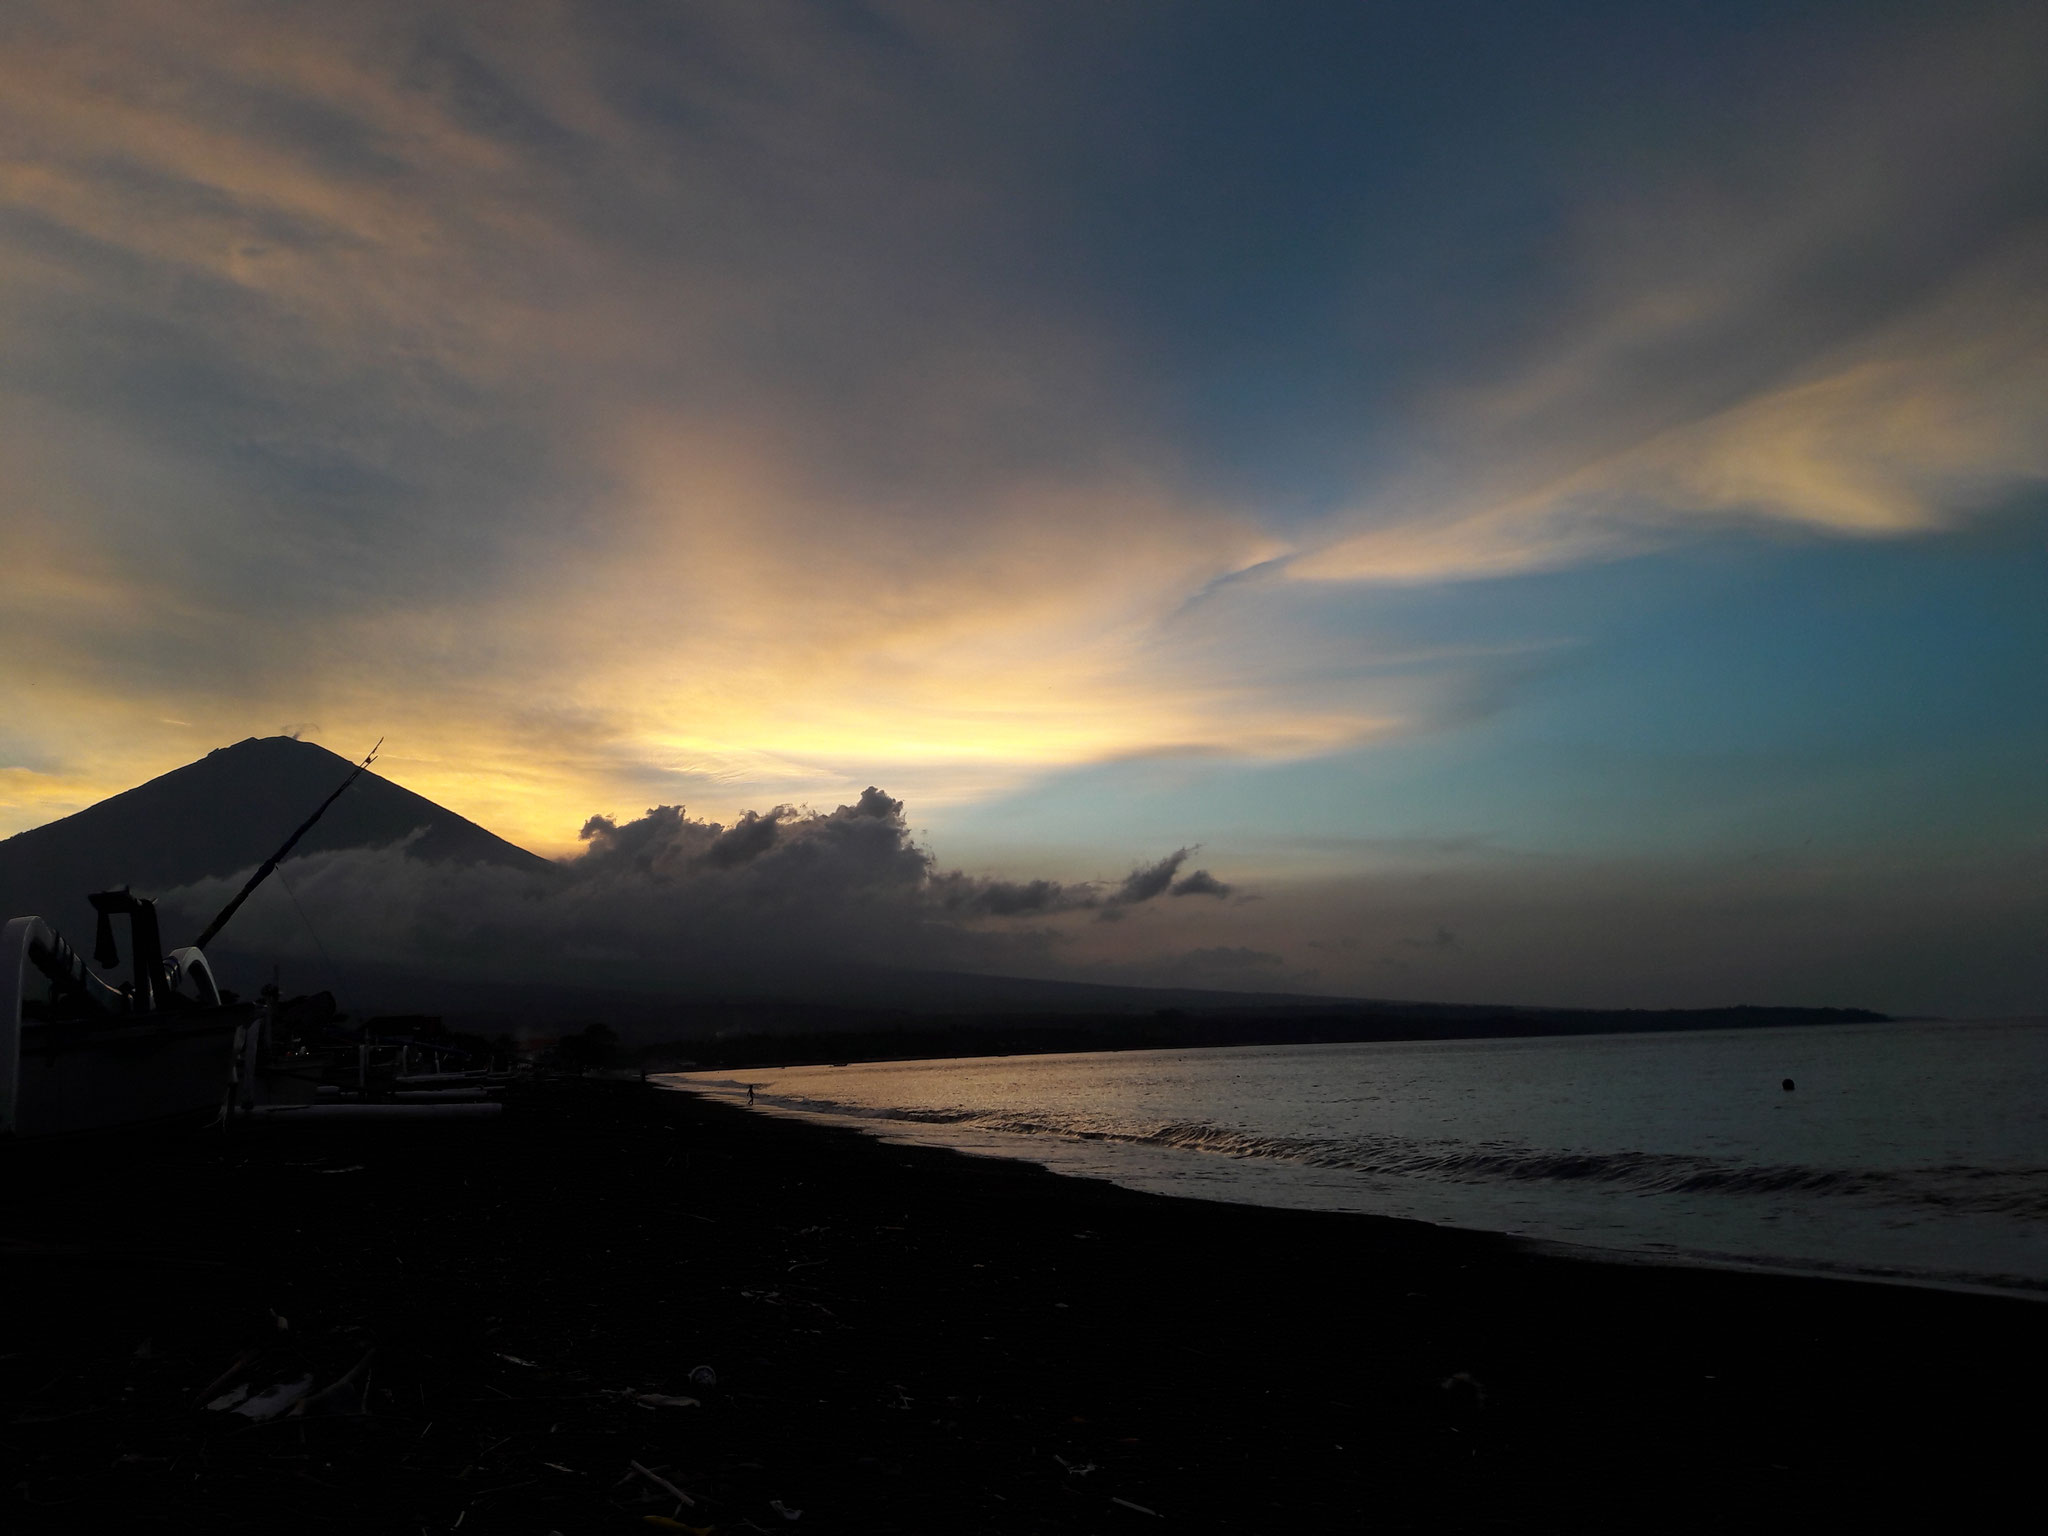 Bulih Beach Bungalows - Beach / Mount Agung / Sunset